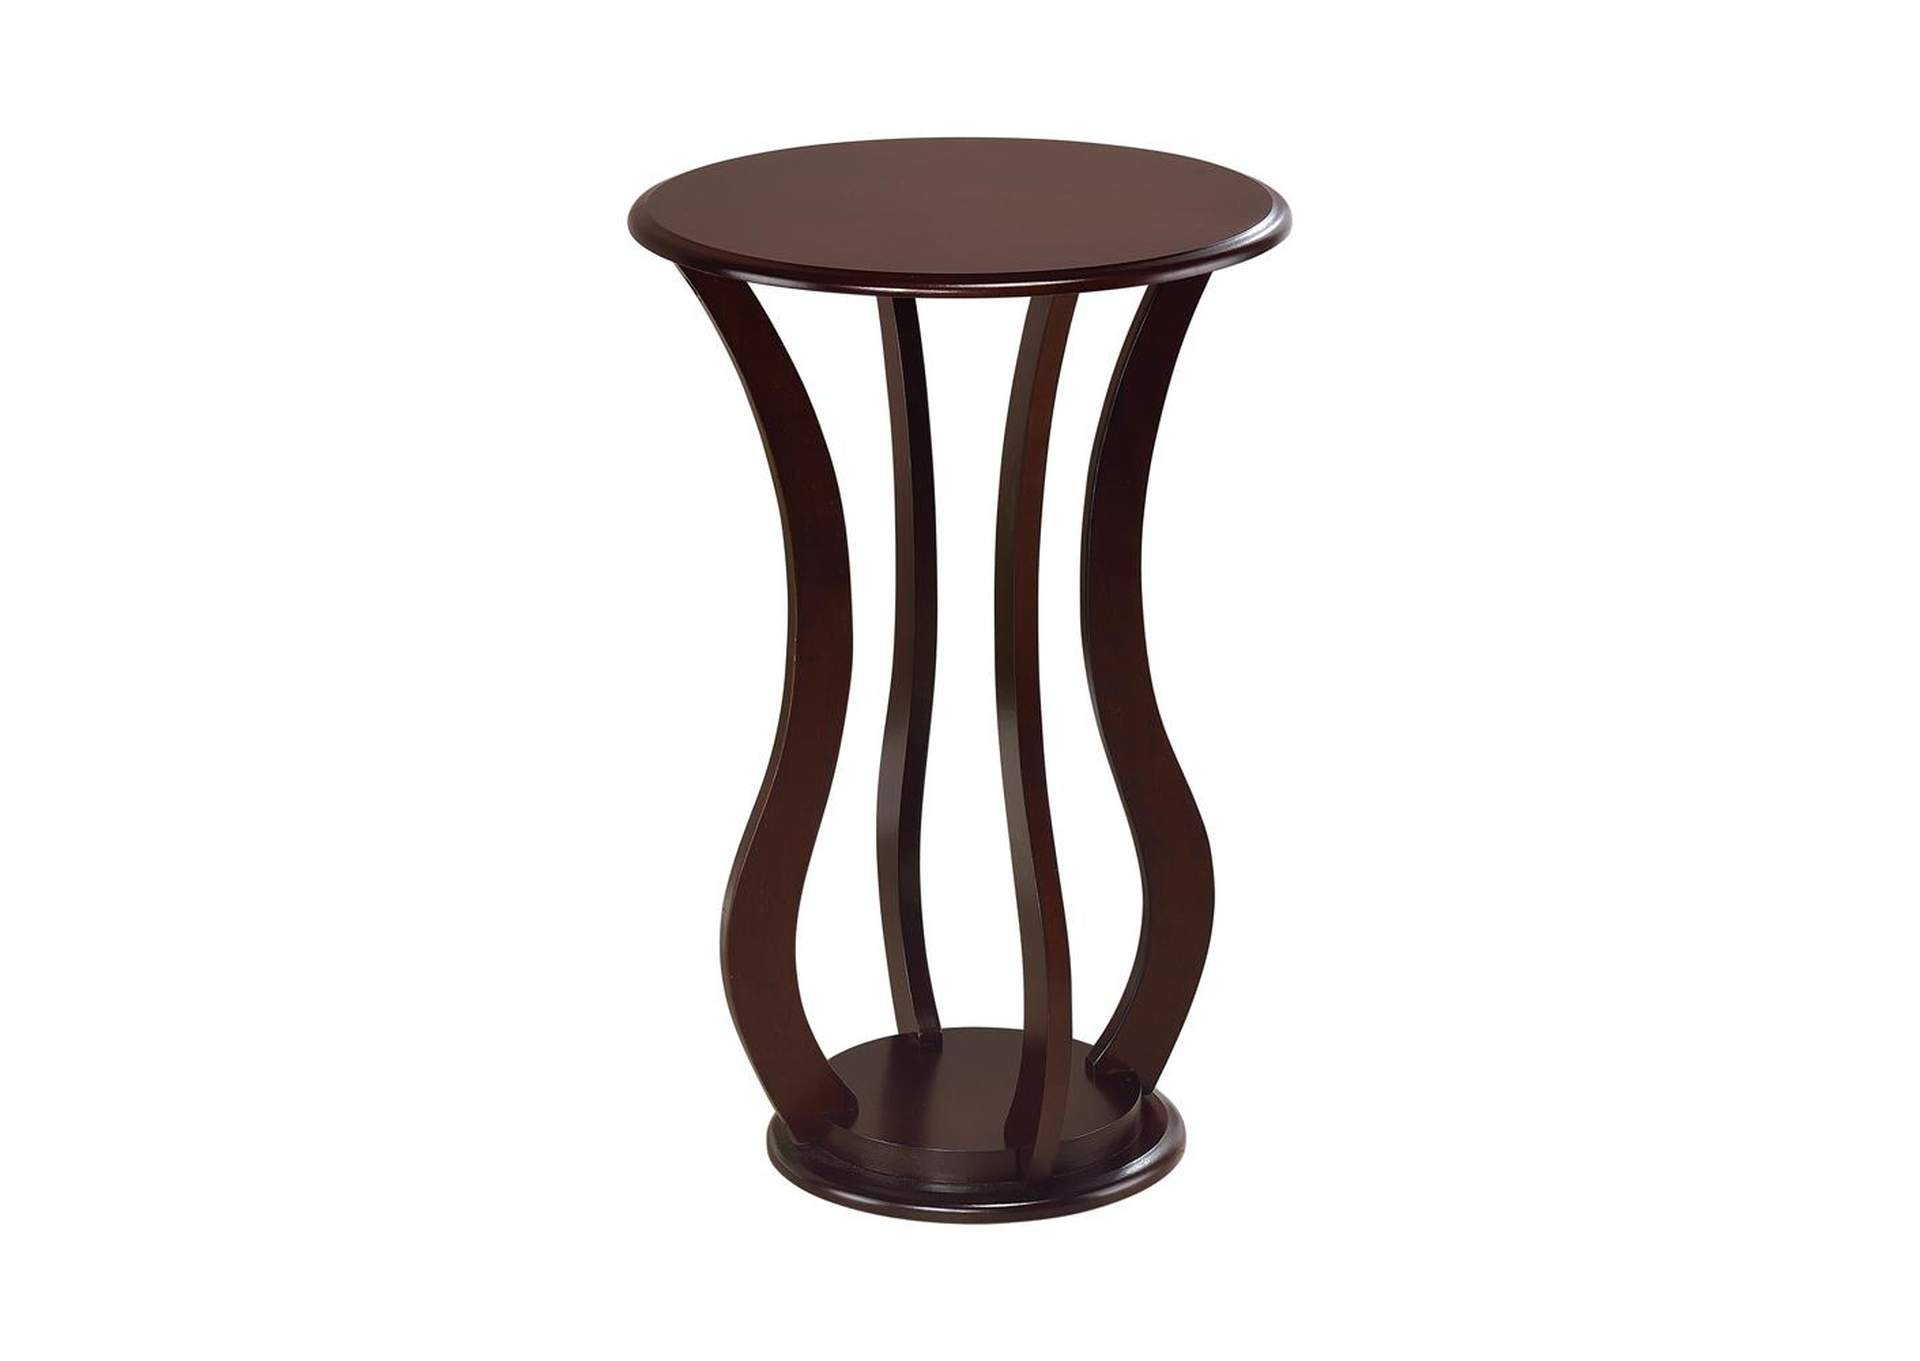 Cherry Transitional Espresso Plant Stand,Coaster Furniture